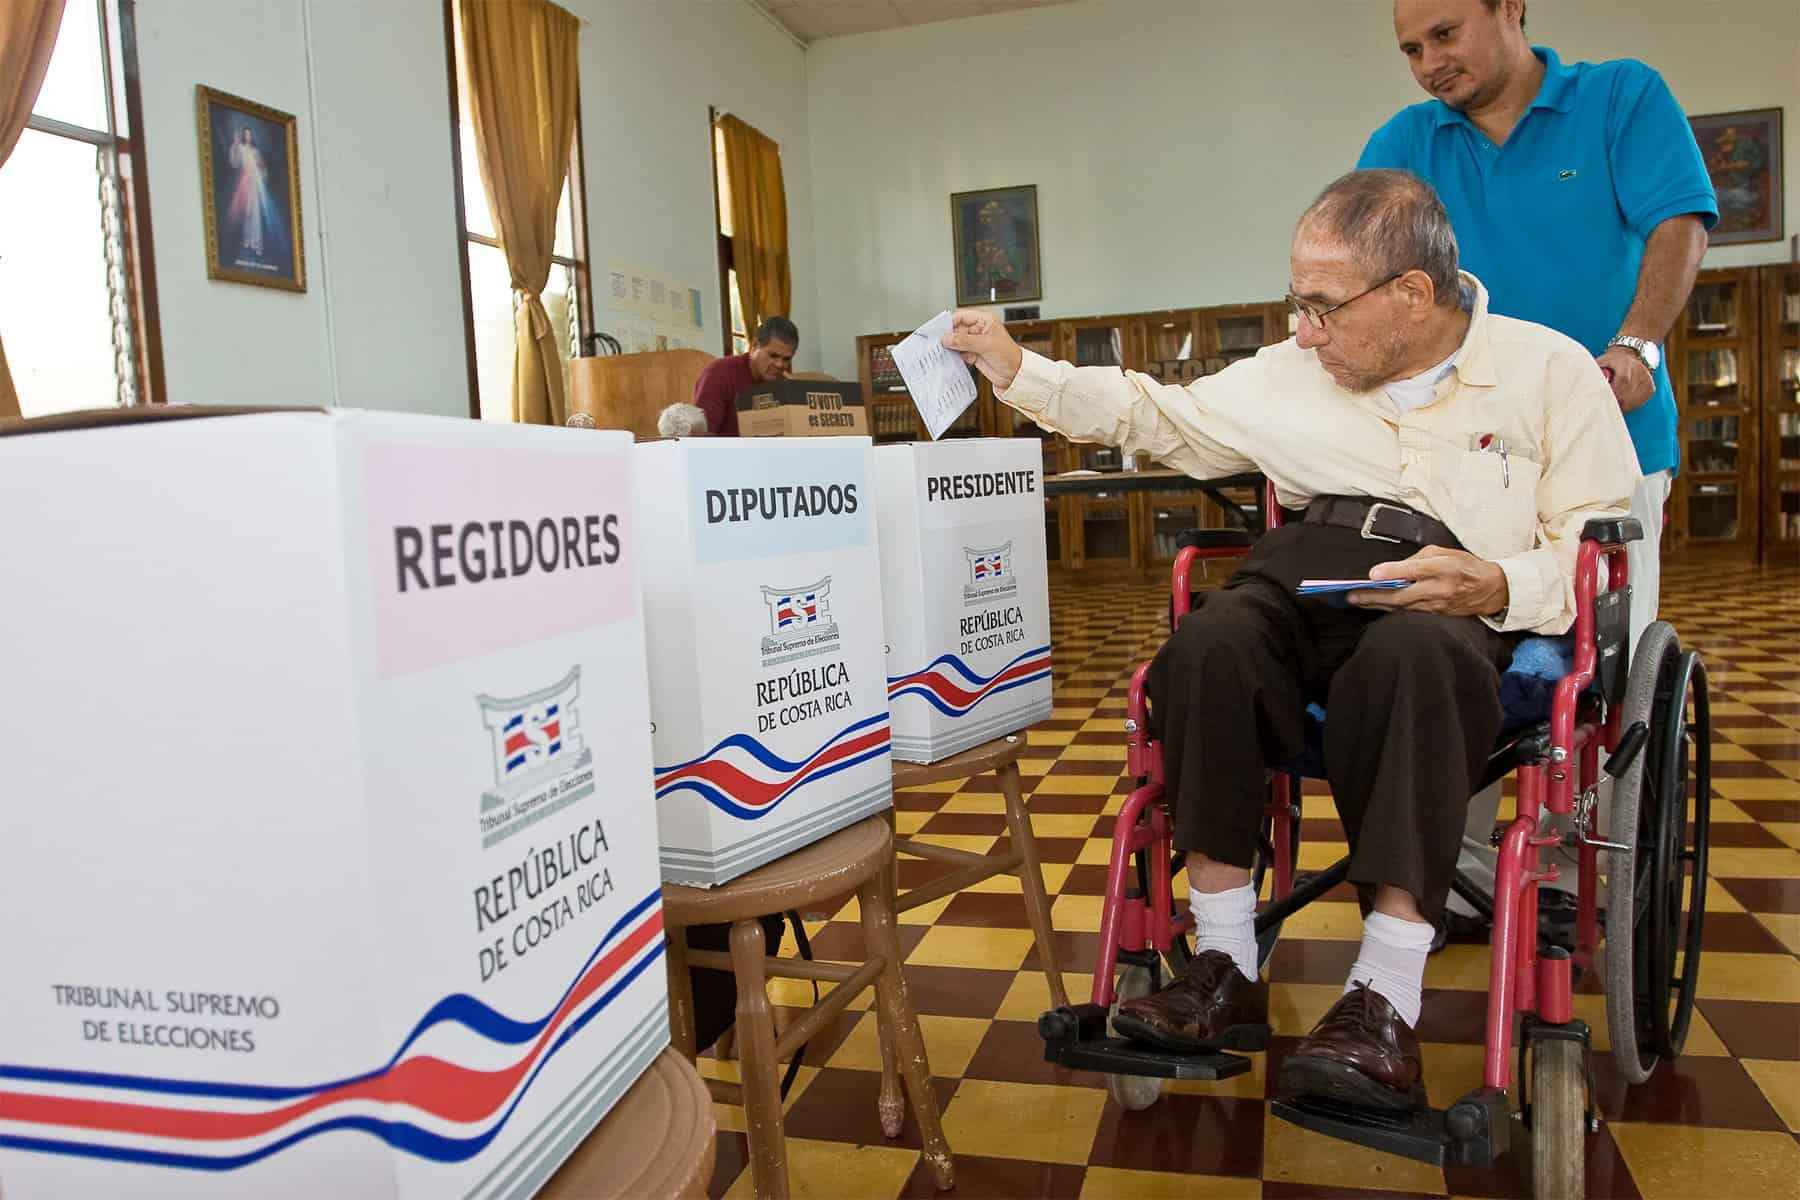 Elections in Costa Rica